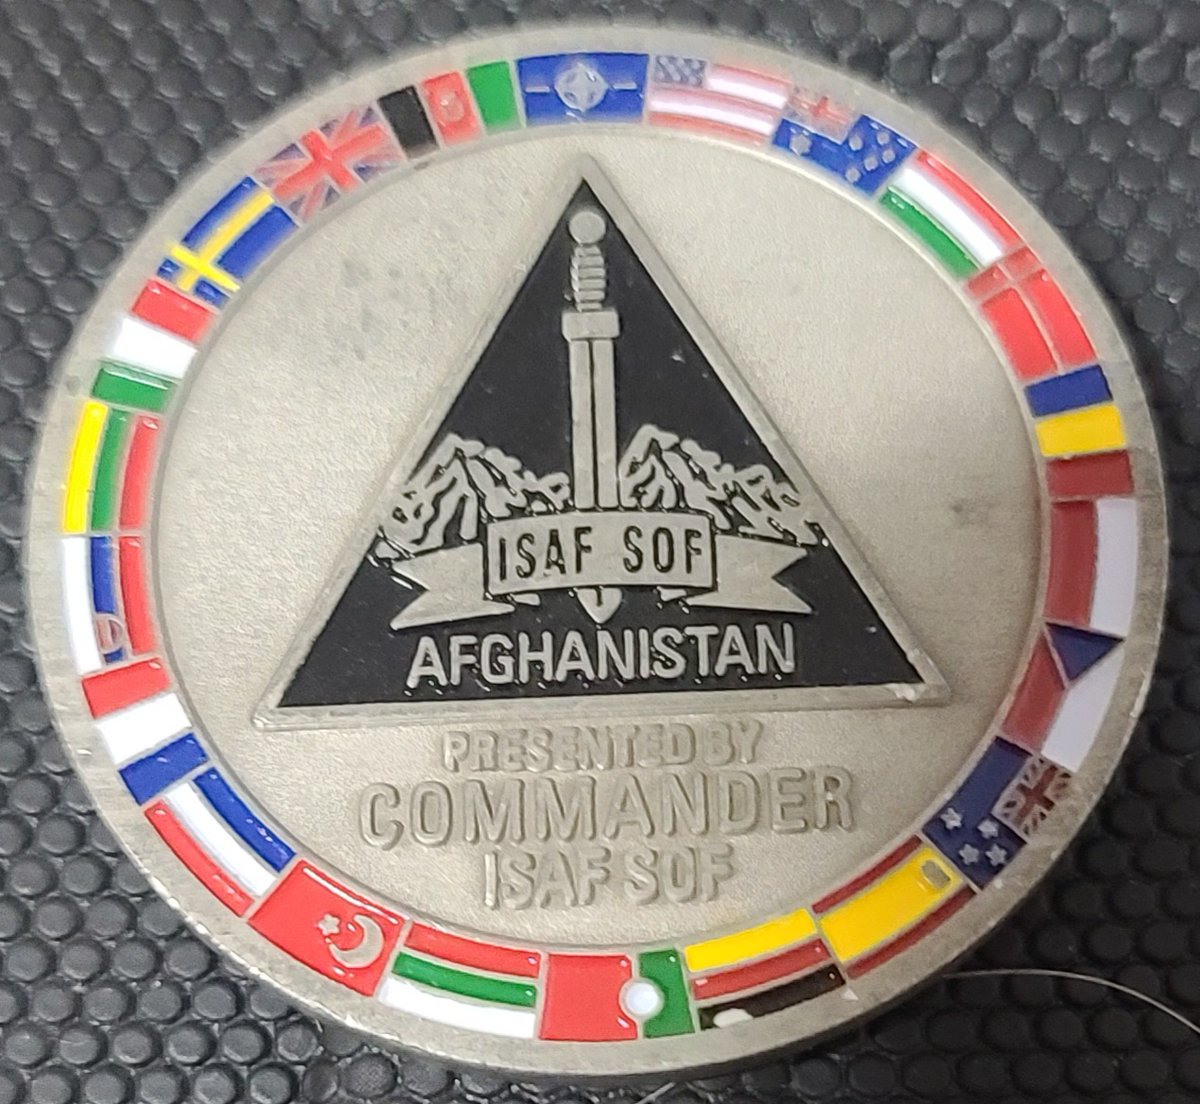 For Today's #challengecoinoftheday #instadaily post we're sharing this #isafsof  #commanderscoin   @SHAPE_NATO  @natosoficcial @NATO @NATO_MARCOM @USNATO @natomission_ru @CanadaNATO @NATOSocial  @NATO_KFOR   @SOCCENT  @soccenter_astana @jsoc_pics  @JSOMonline